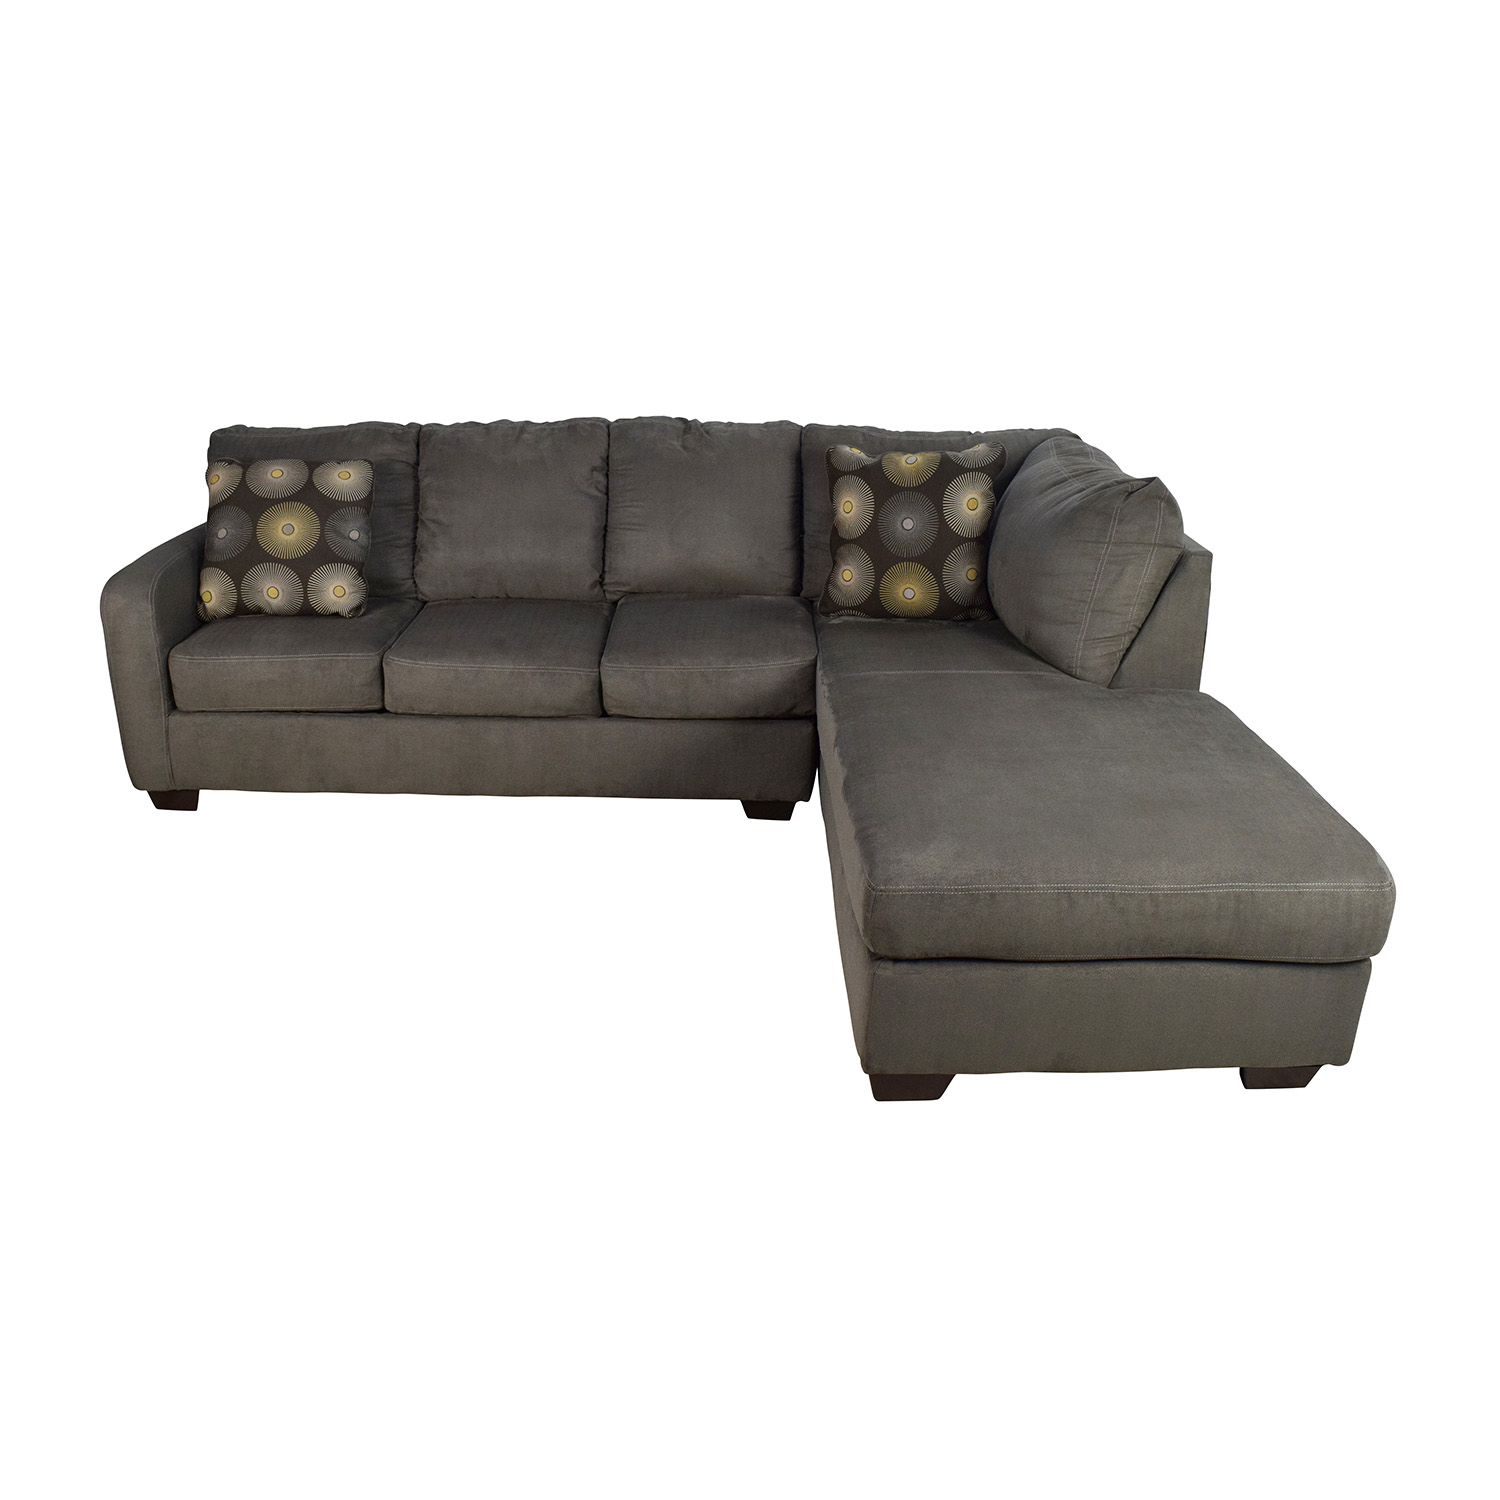 Ashley Furniture Ashley Furniture Waverly Gray Sectional Sofa